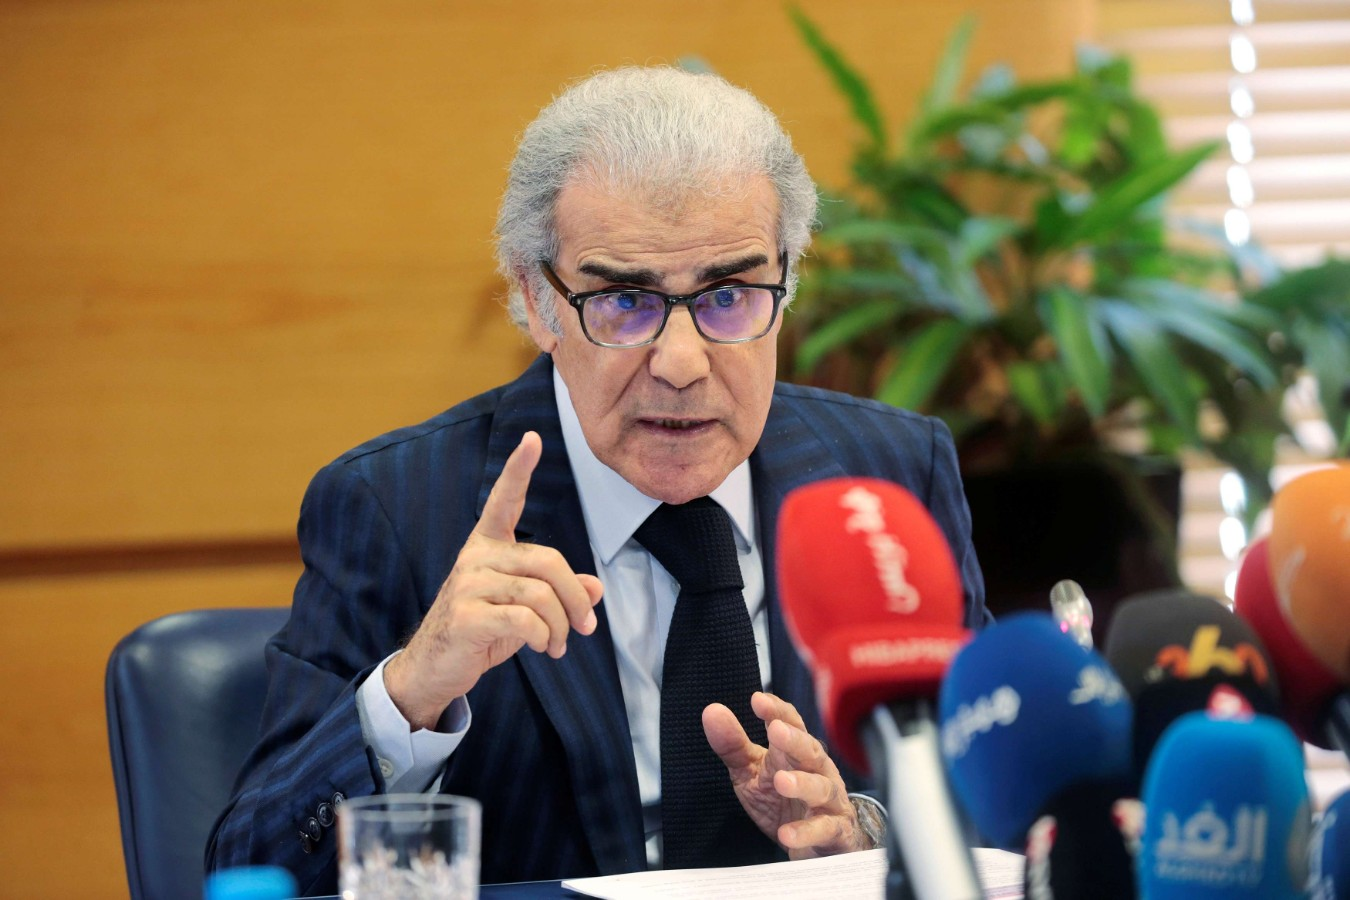 A 2019 file picture shows Bank Al-Maghrib Governor Abdellatif Jouahri speaking during a news conference in Rabat. (Reuters)